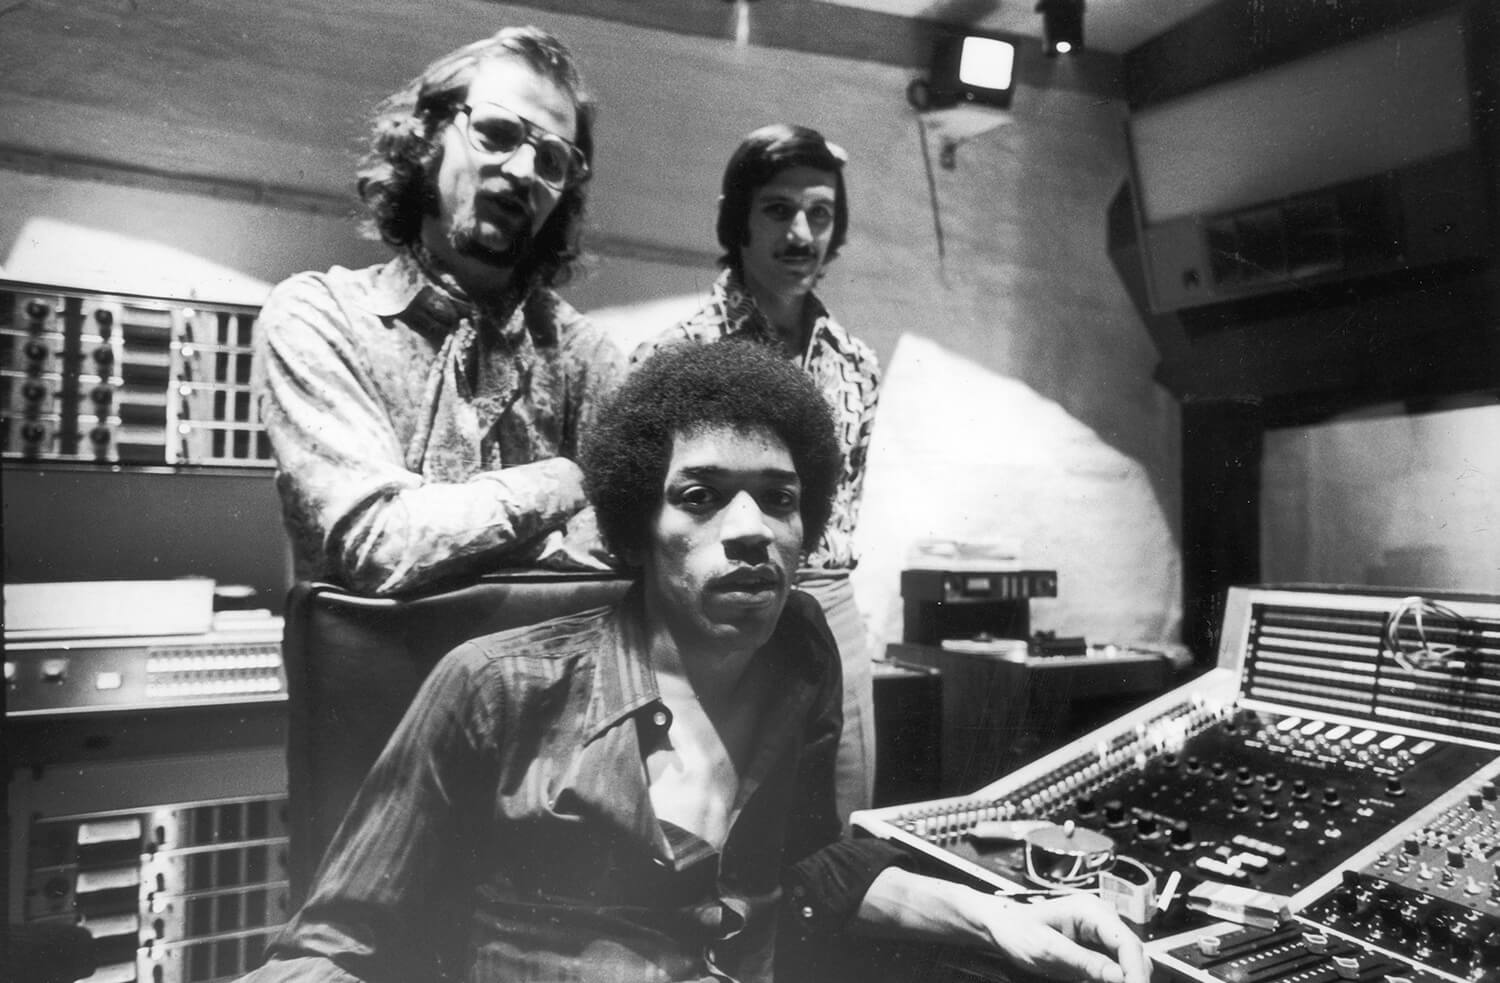 Jimi Hendrix, Eddie Kramer, and Jim Marron at Electric Lady Studio, 1970